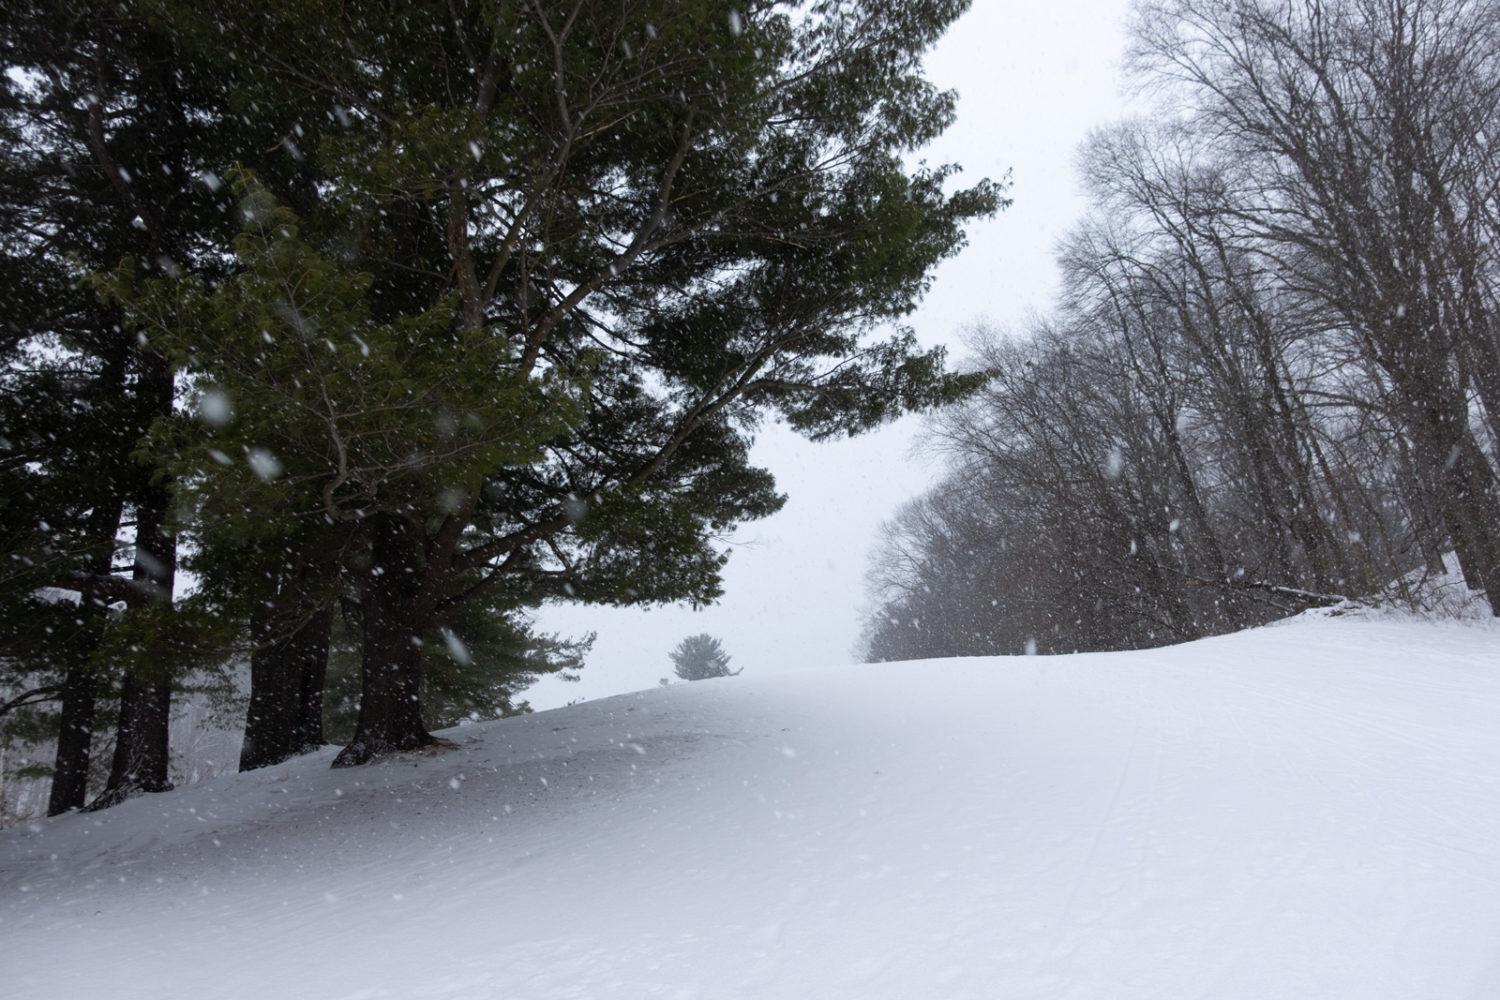 Hill on golf course in the snow